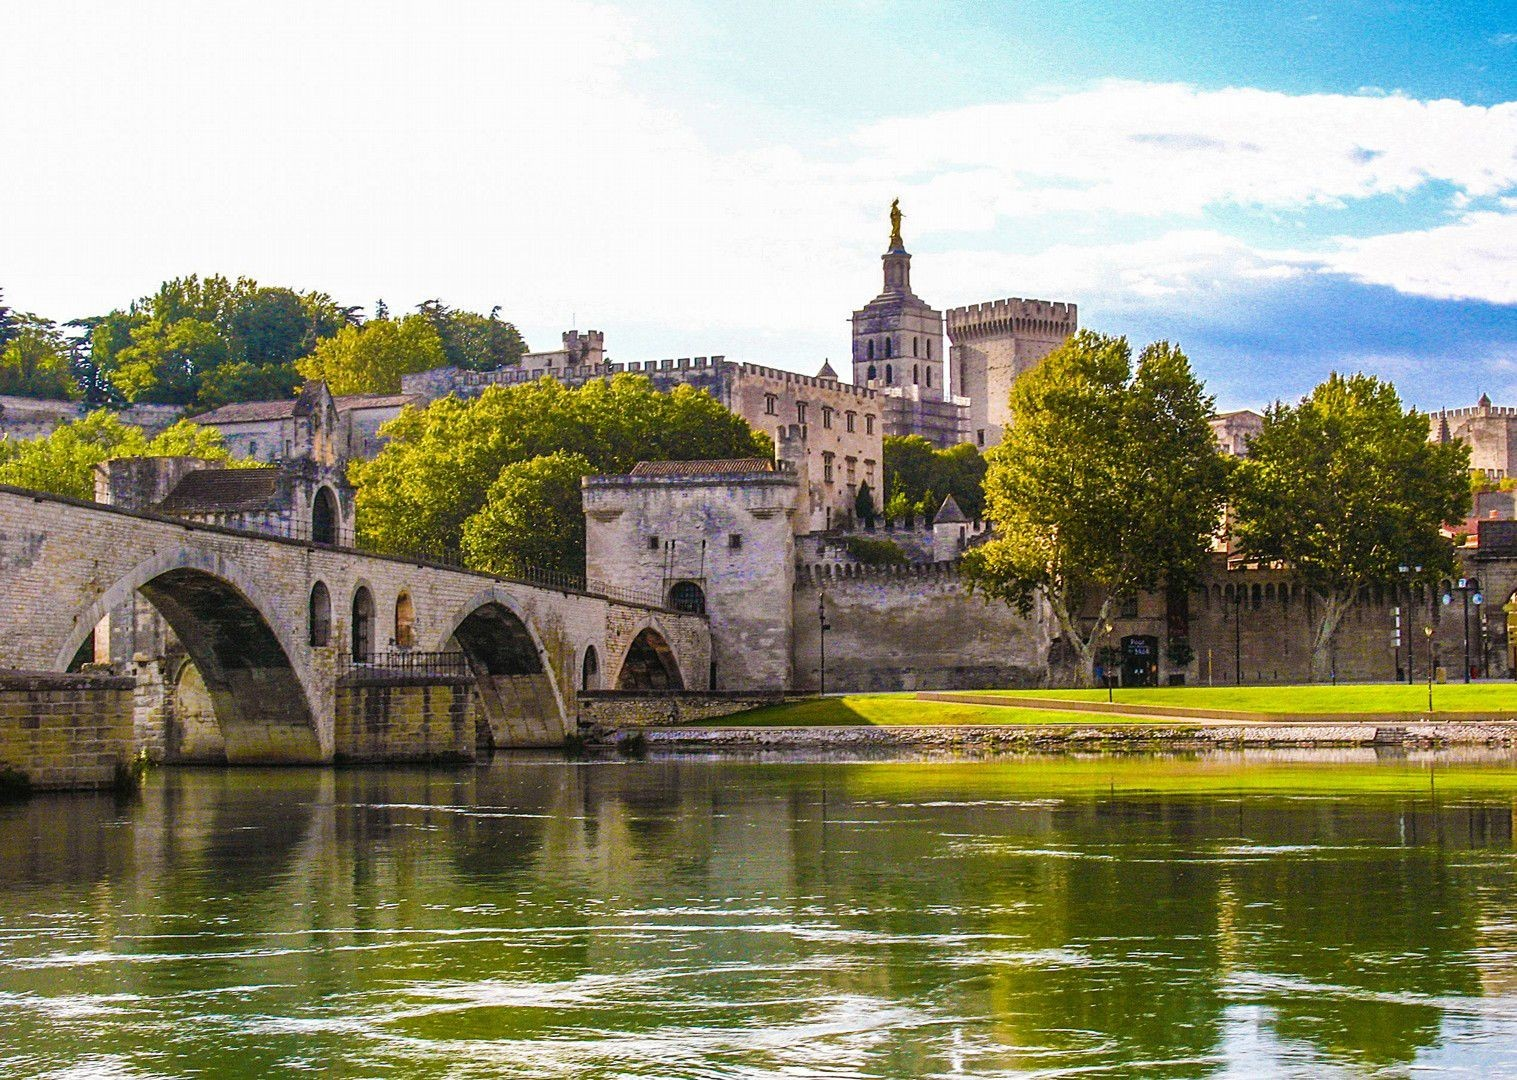 aigues-mortes-to-avignon-palais-des-papes-bike-and-boat-tour.jpg - France - Provence - Self-Guided Leisure Cycling Holiday - Leisure Cycling